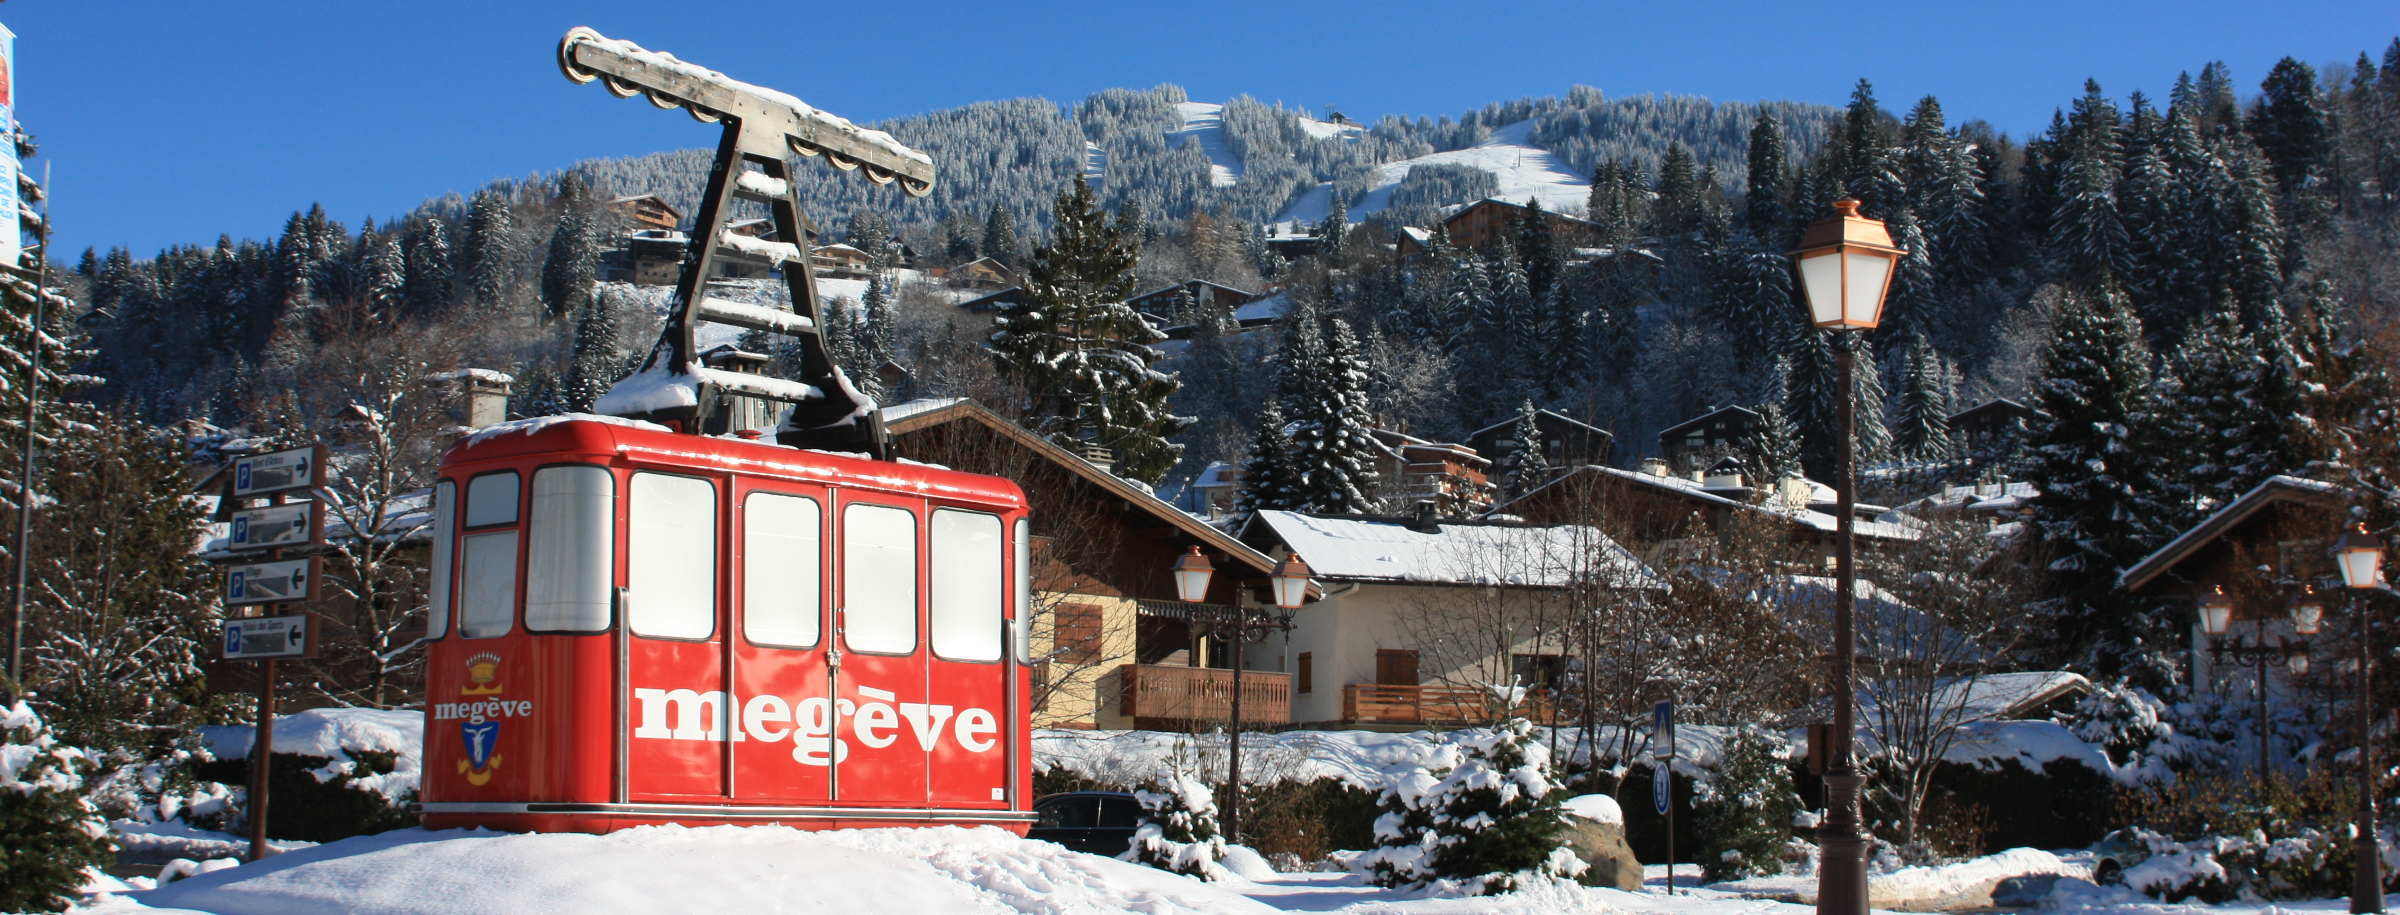 Megeve top hotels-restaurants-bars